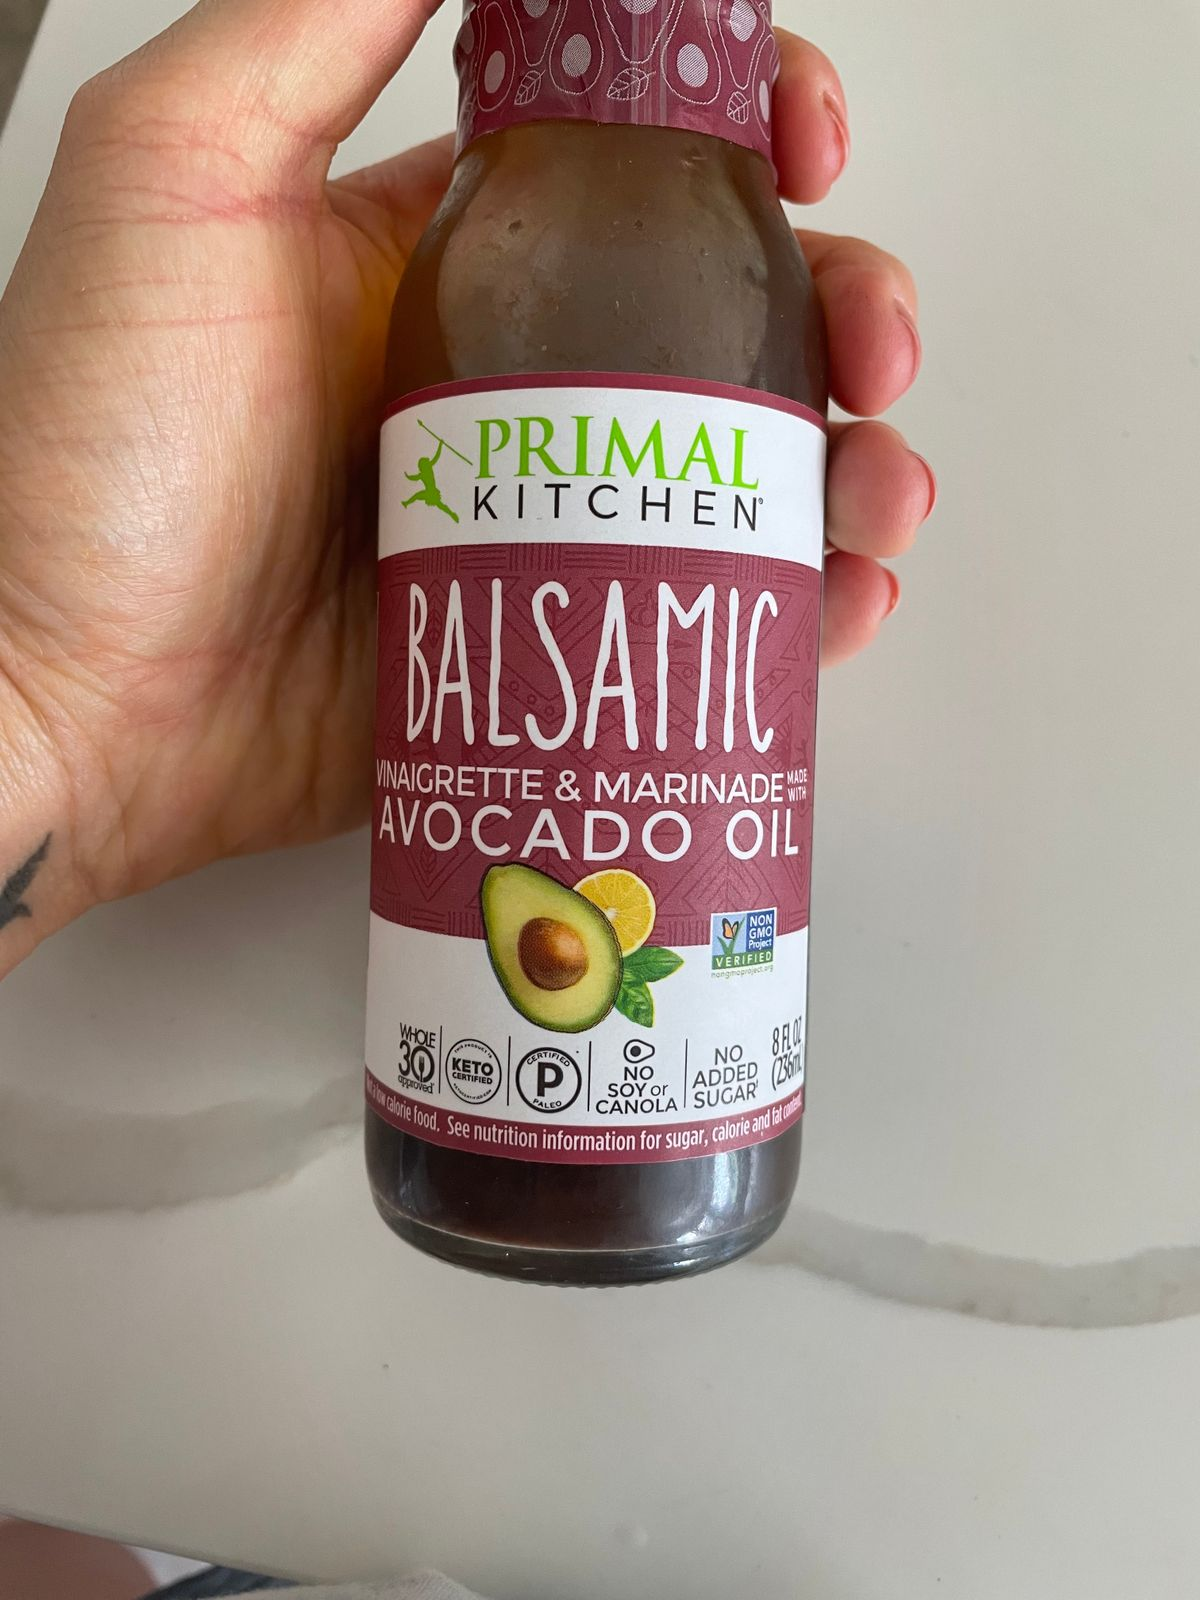 Primal Kitchen Whole30 Kit Condiments Made With Avocado Oil